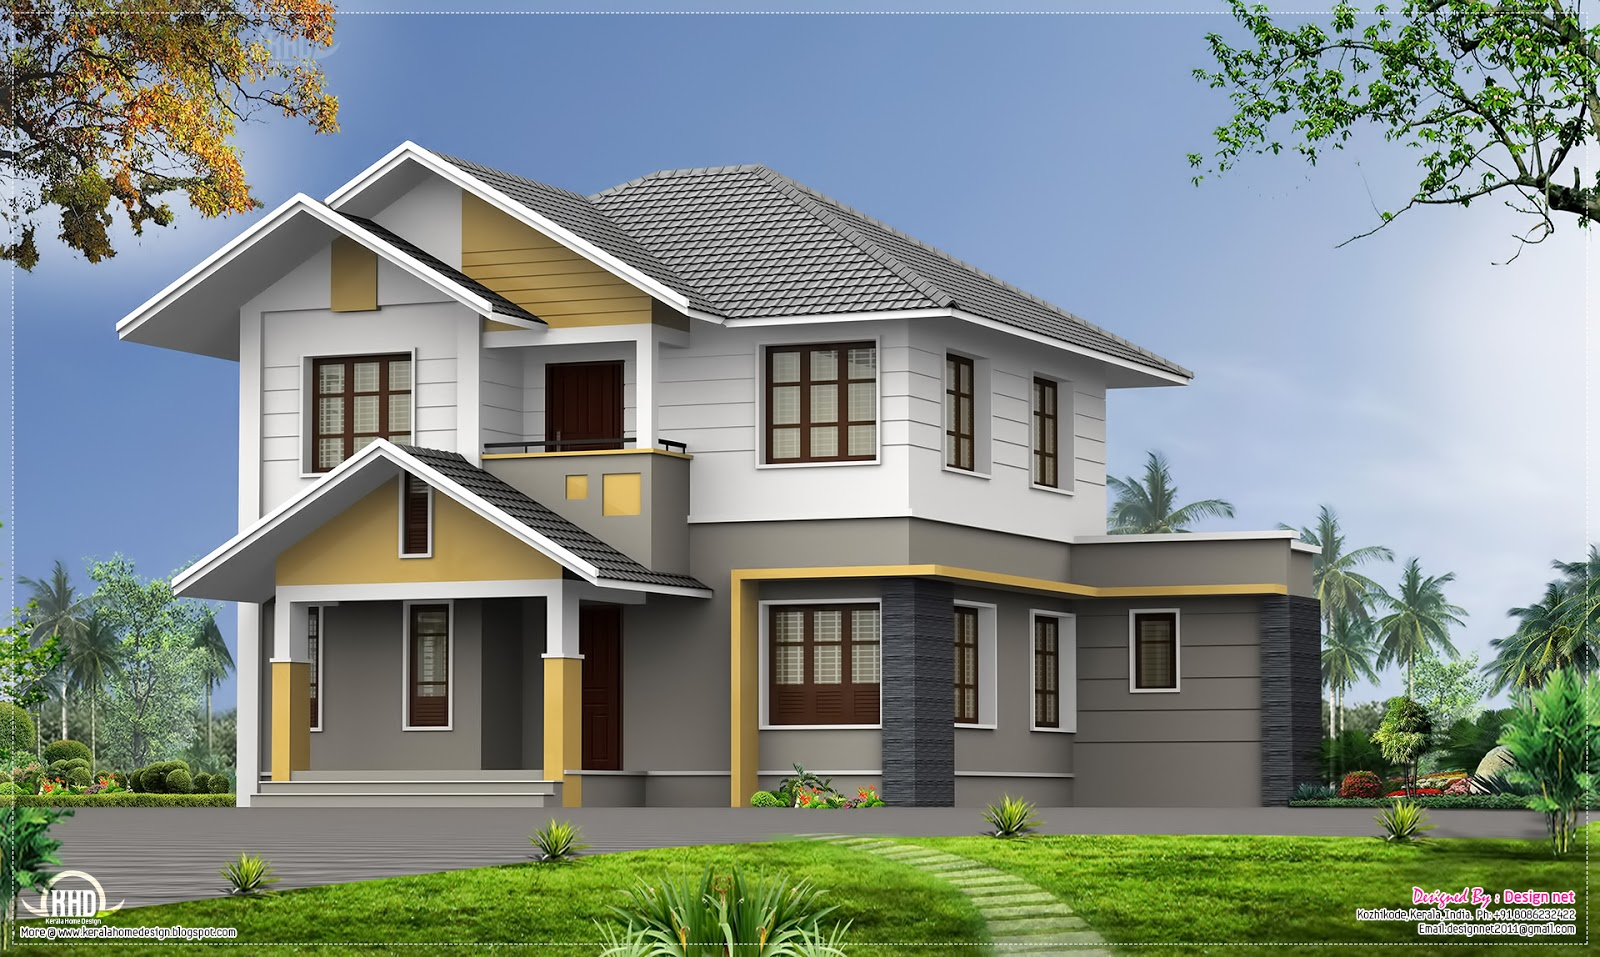 New Home Design Home Plans India Of Sq Ft on 20000 sq ft home plans, 9000 sq ft home plans, 800 sq ft home plans, 10000 sq ft home plans, 1100 sq ft home plans, 4000 sq ft home plans, 2000 sf home plans, 950 sq ft home plans, 650 sq ft home plans, 7500 sq ft home plans, 3800 sq ft home plans, 250 sq ft home plans, 2750 sq ft home plans, 1700 sq ft home plans, 25000 sq ft home plans, 1150 sq ft home plans, 15000 sq ft home plans, 1750 sq ft home plans, 4500 sq ft home plans, 2800 sq ft home plans,